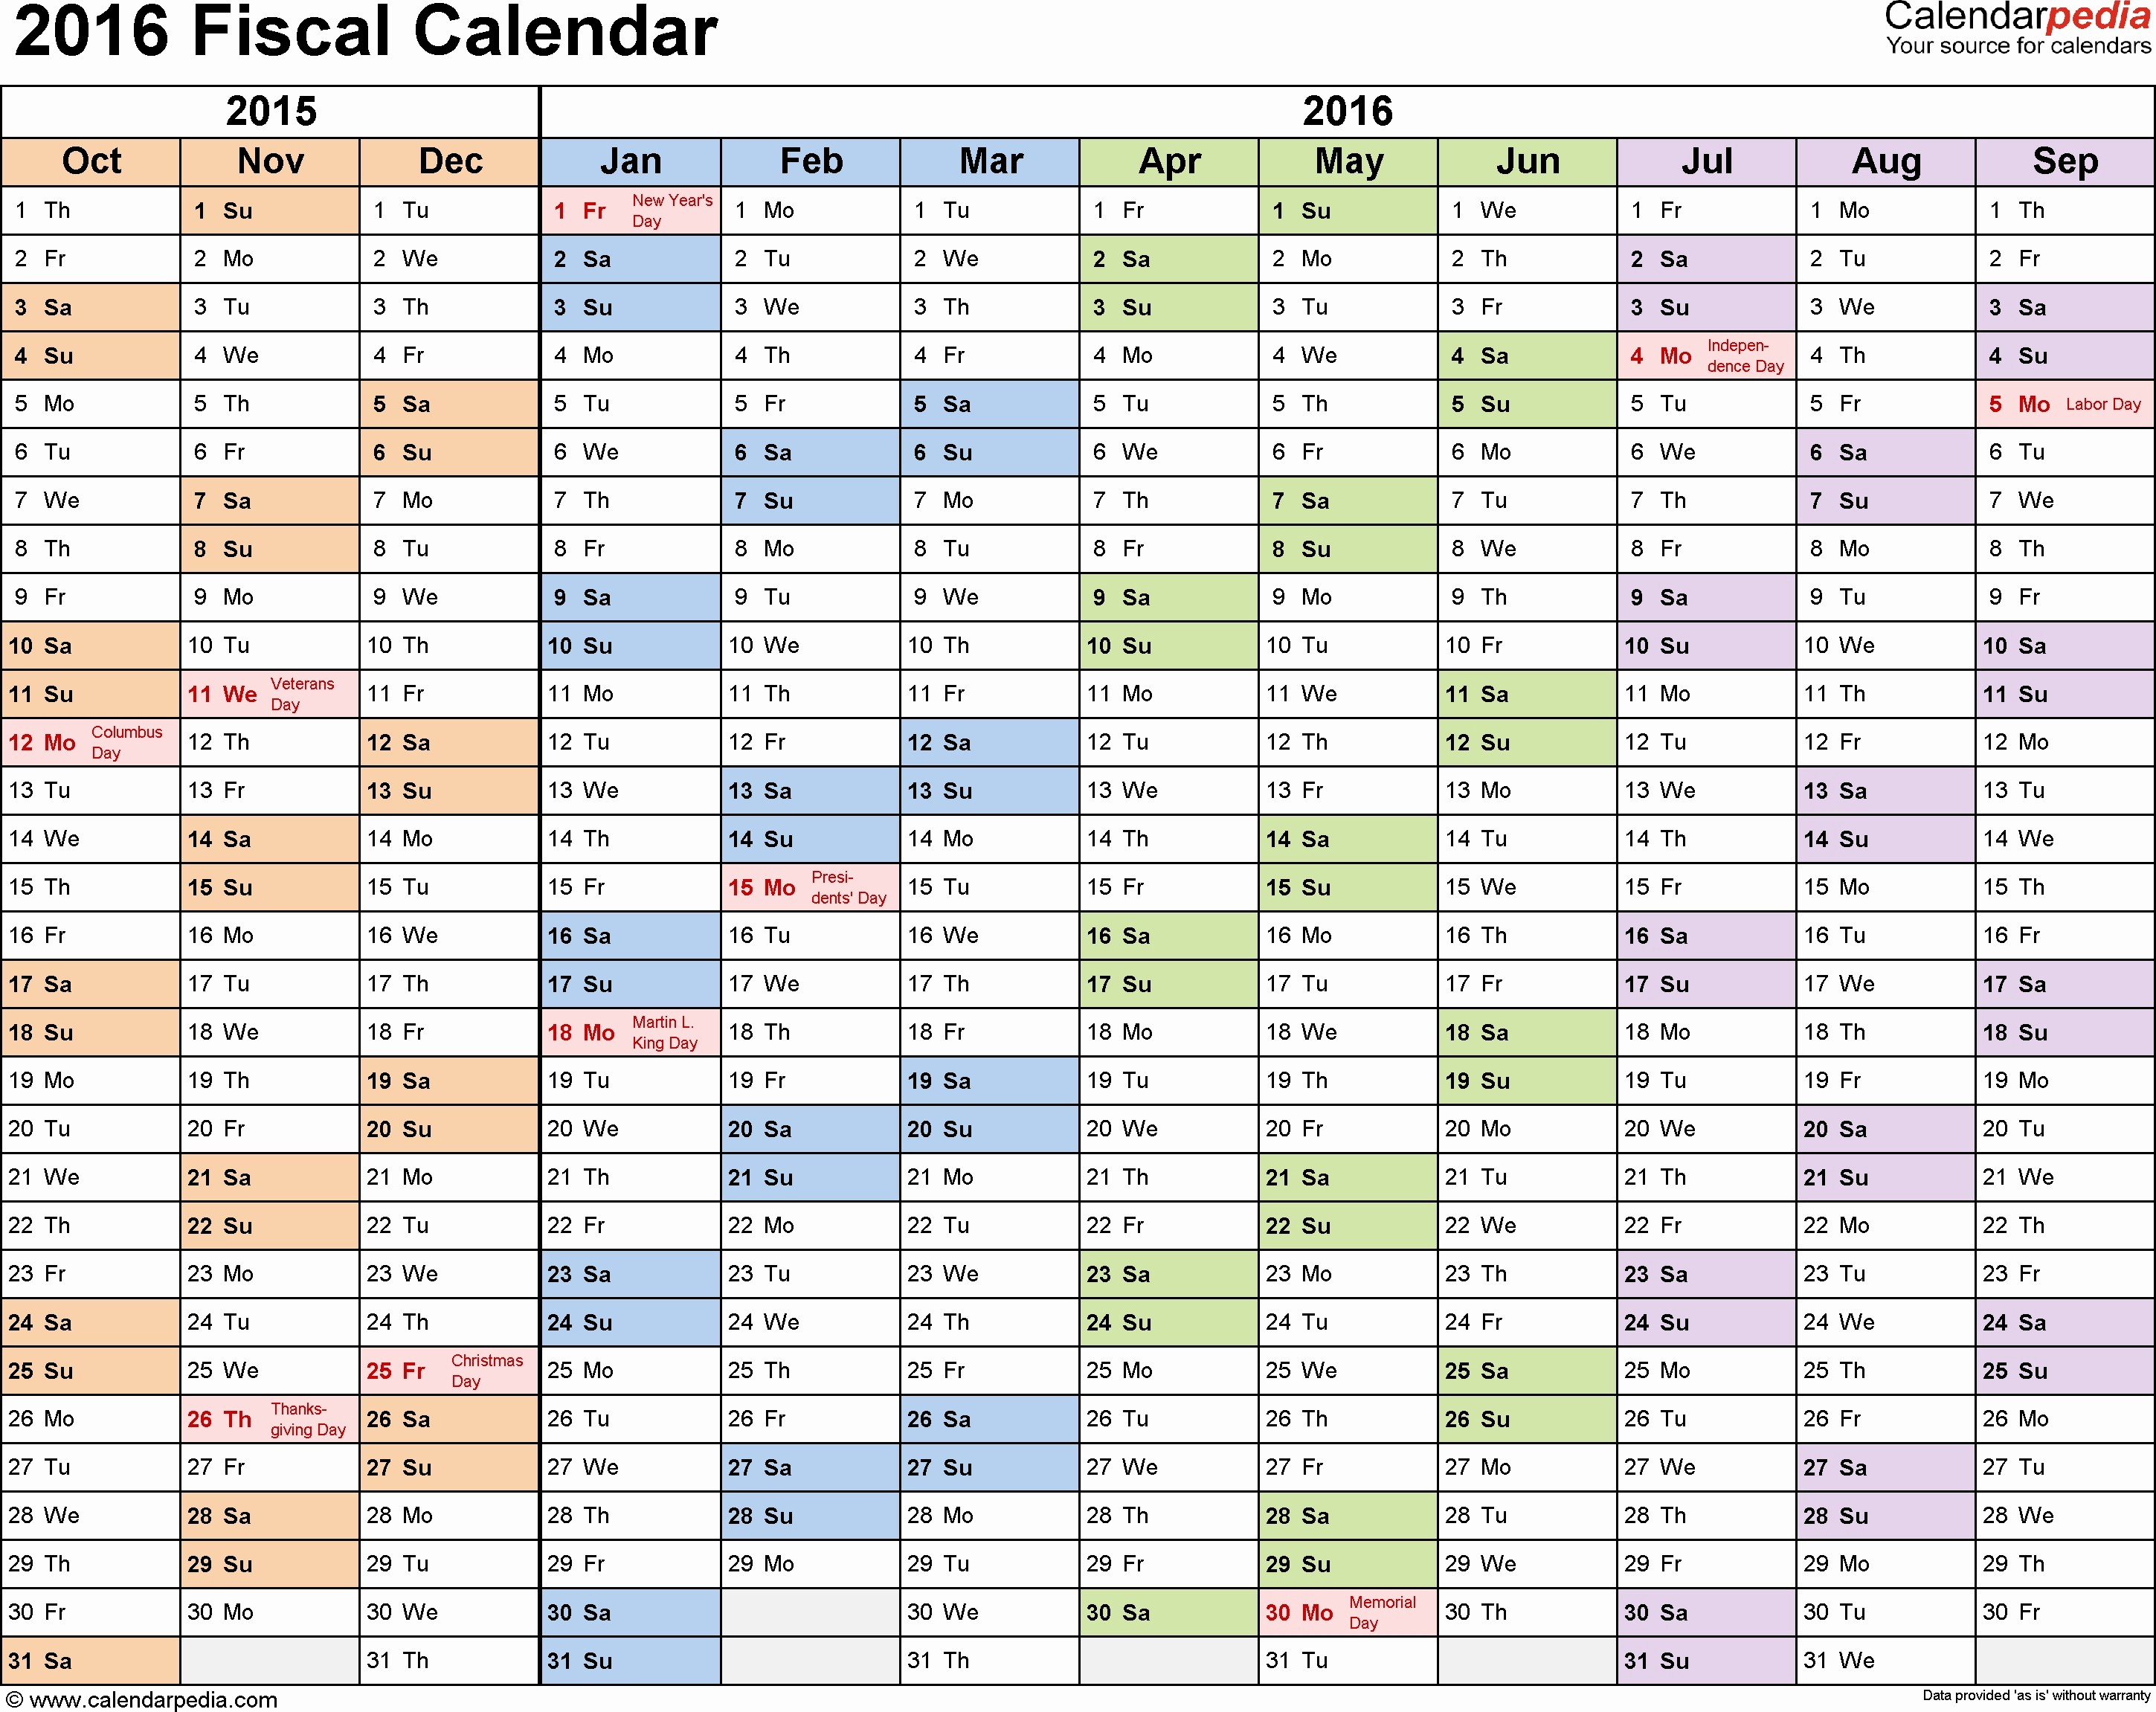 Time Off Calendar Template 2016 Beautiful Calendar with Time Slots 2016 Printable